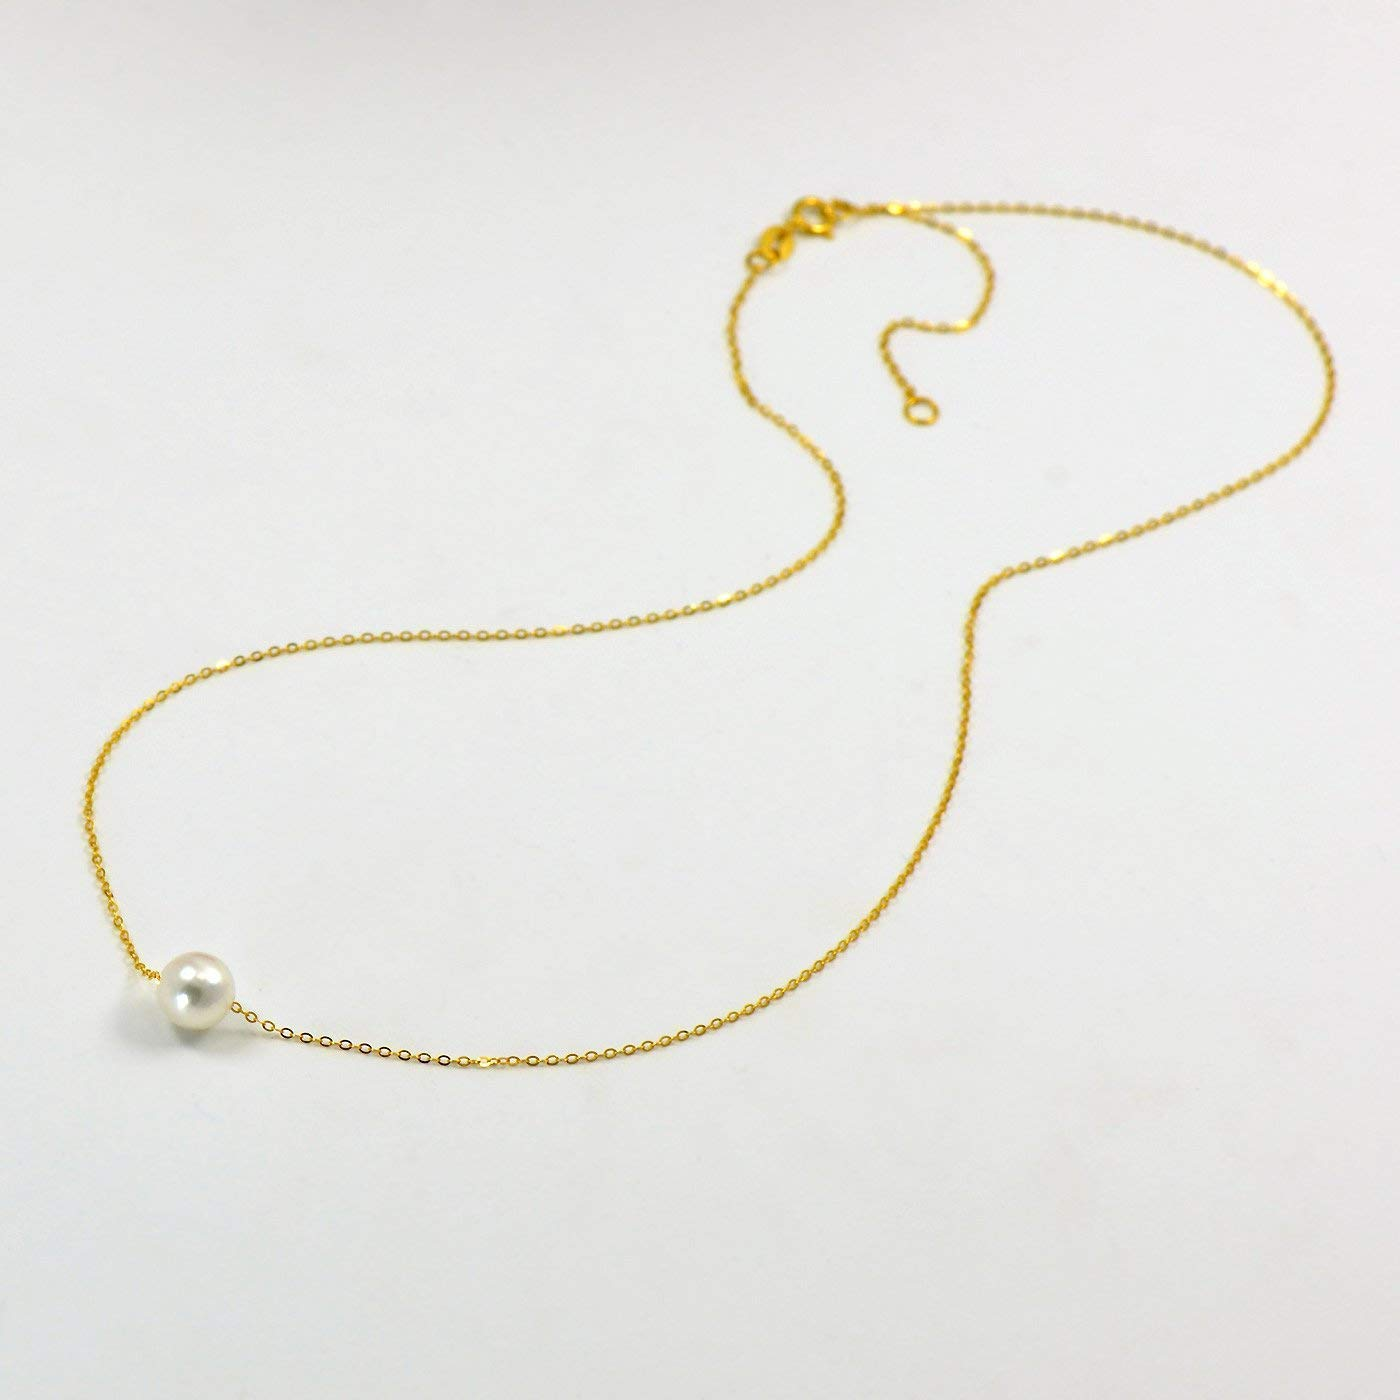 18K Yellow Gold Chain Necklace Single Cultured Japanese Akoya Pearl 7-8MM 6112UwayVrL._SL1400_